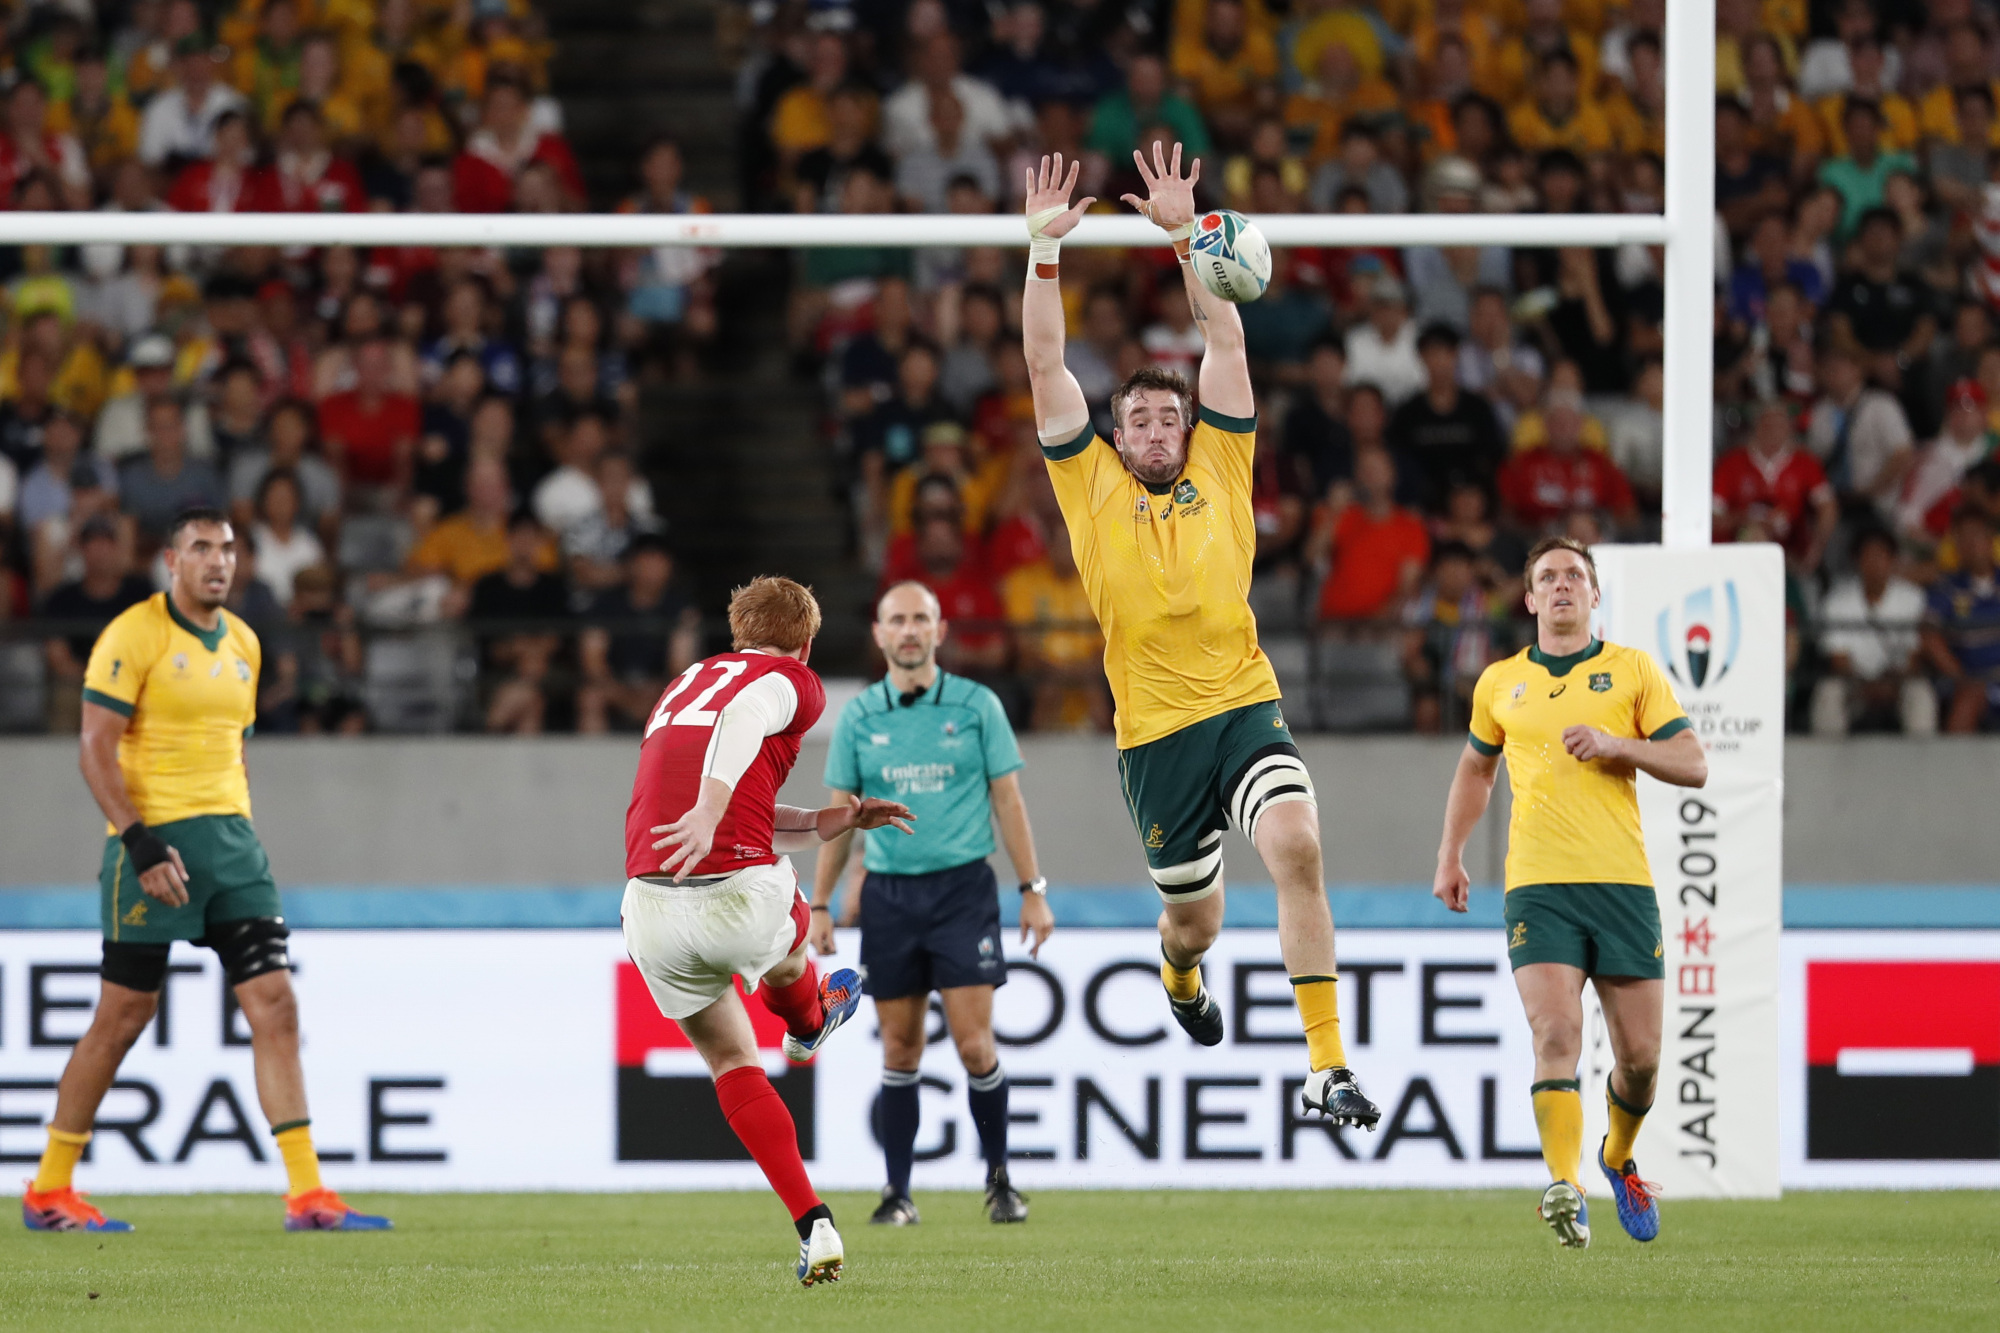 Wales' Rhys Patchell scores a drop goal against Australia on Sept. 29 in a Rugby World Cup Pool D match at Toyota Stadium. | REUTERS